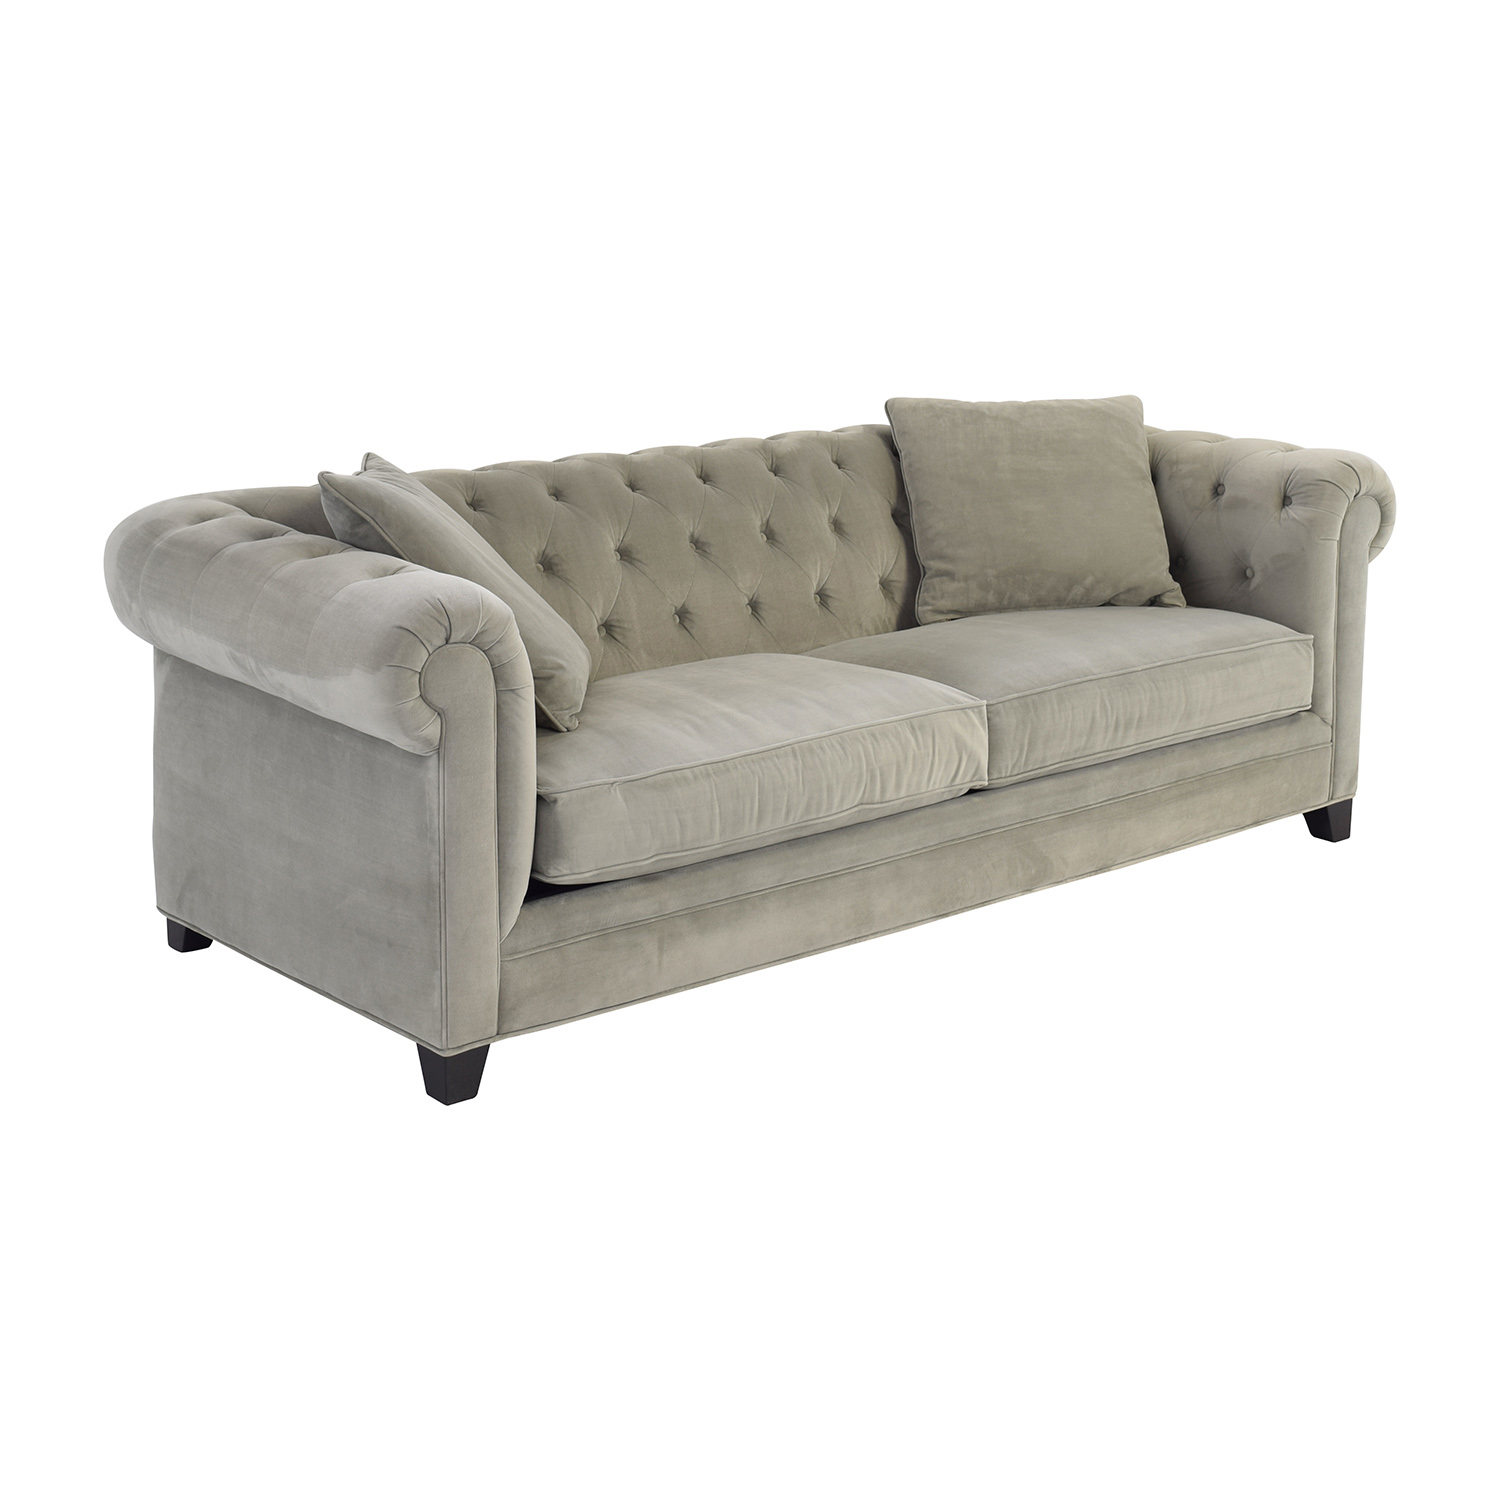 Macy's Martha Stewart Saybridge Grey Sofa / Sofas